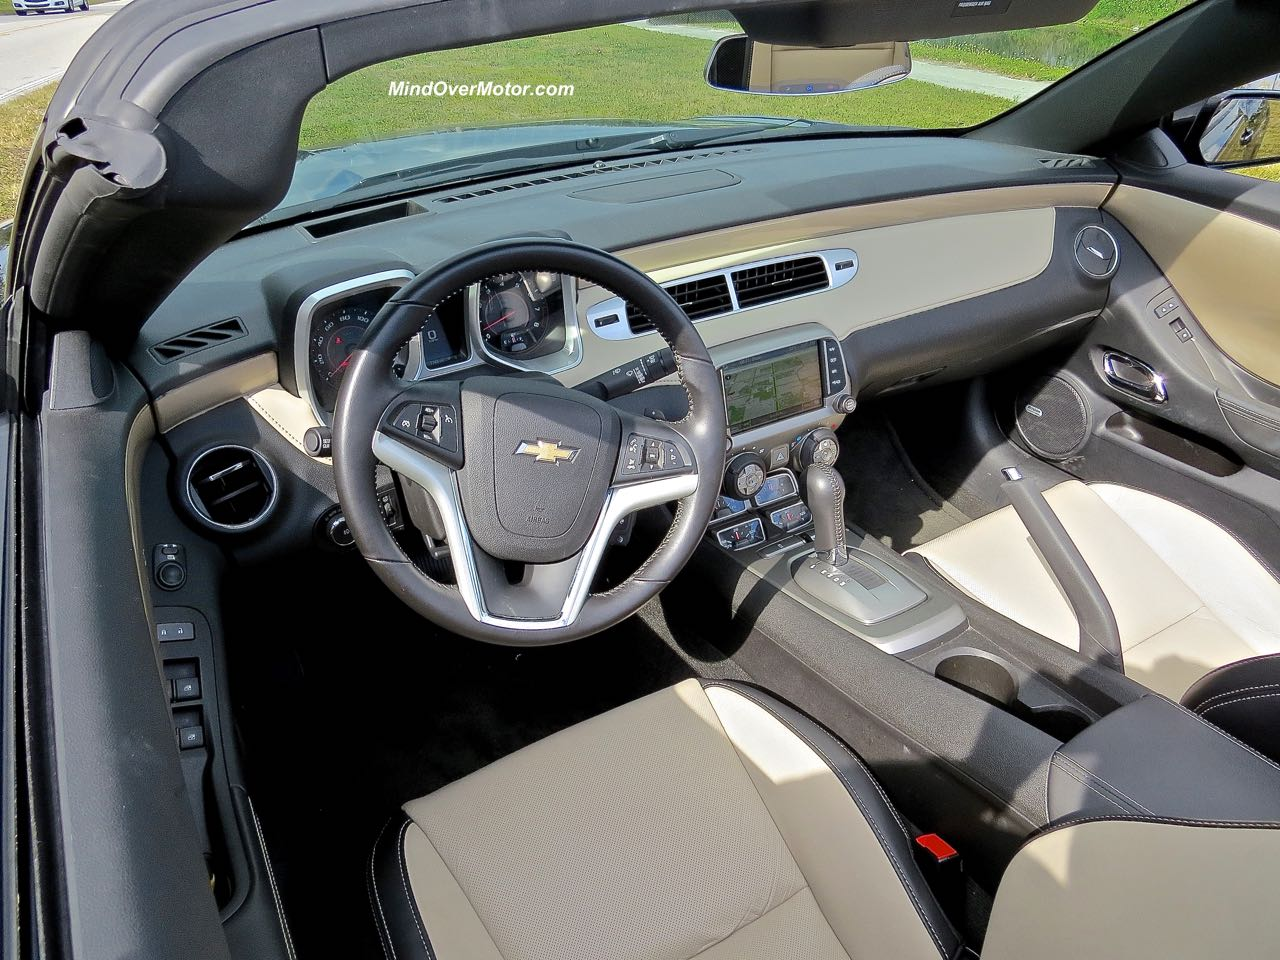 2015 Chevrolet Camaro Convertible Dashboard Detail